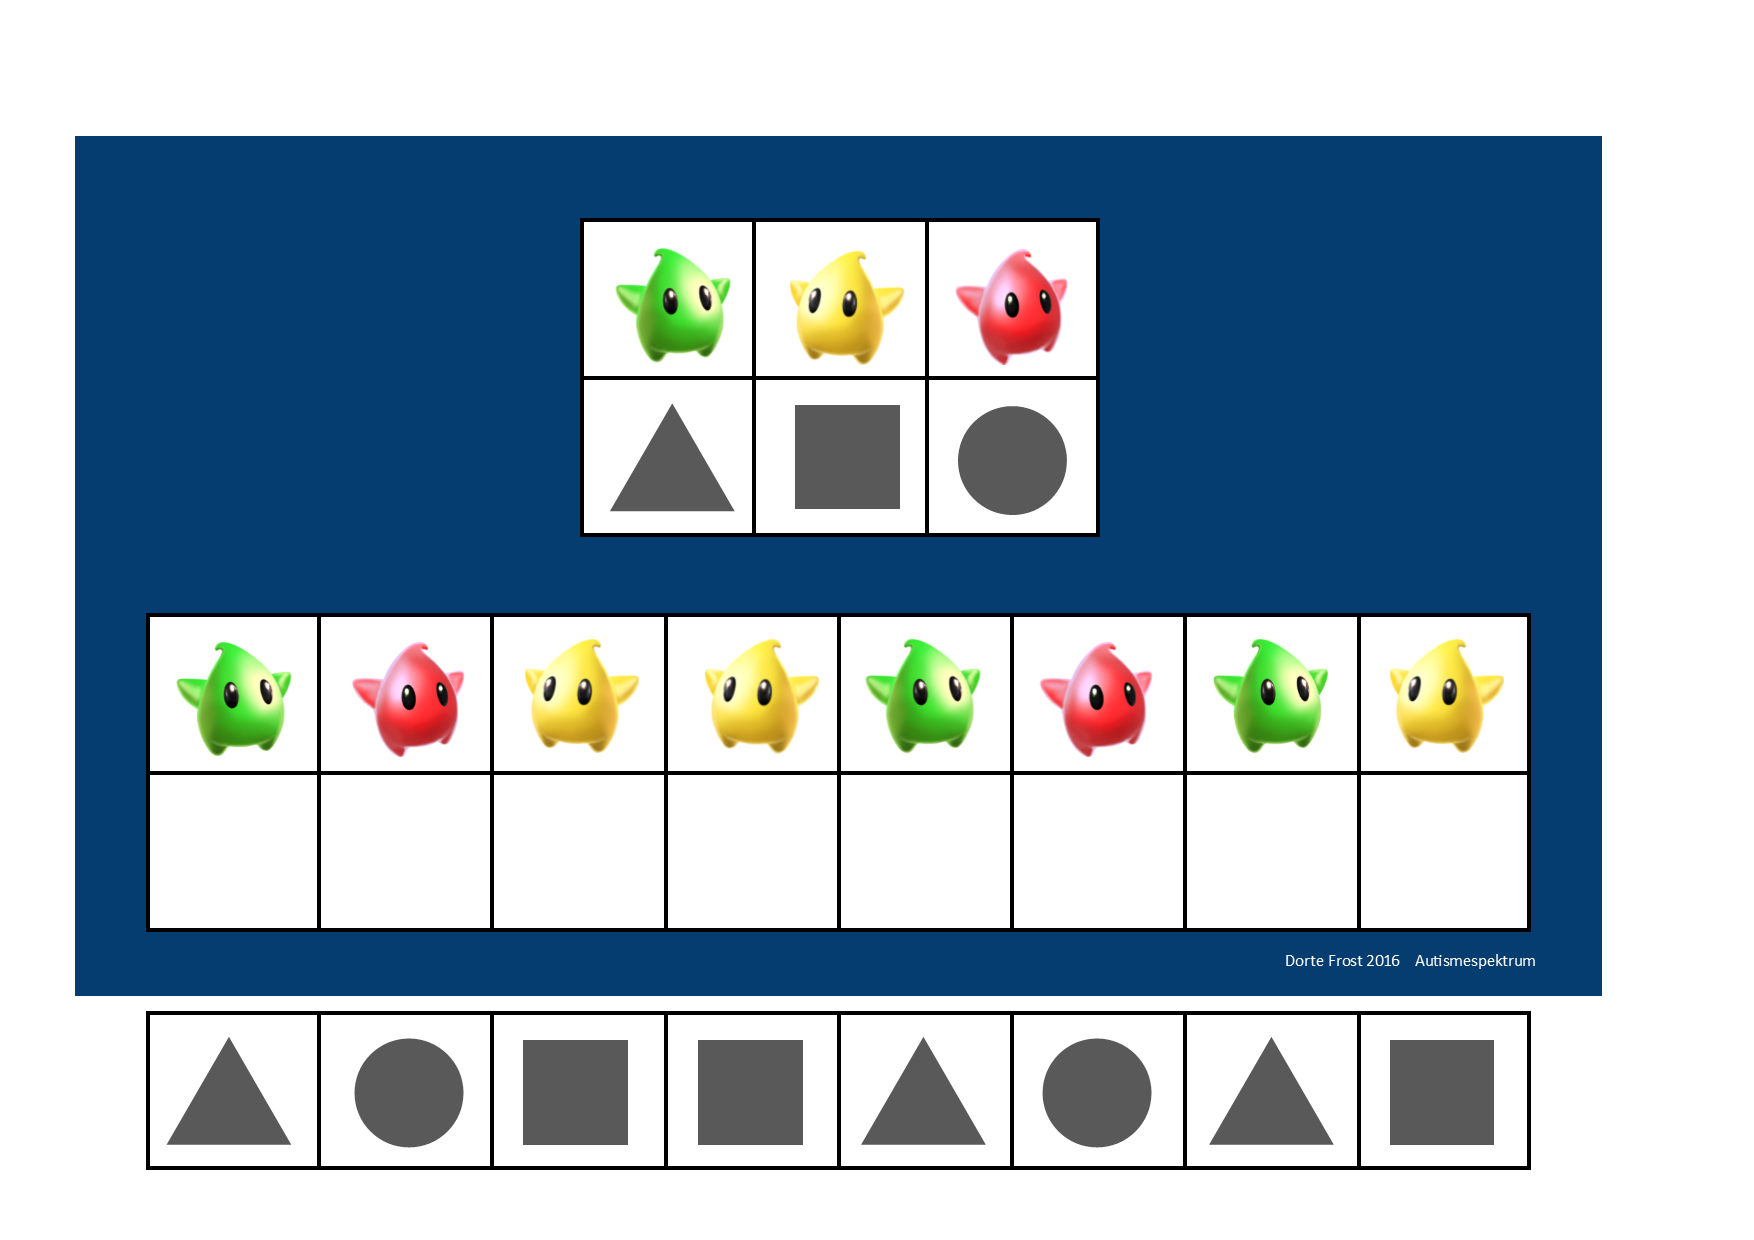 Board And Tiles For The Mario Visual Perception Game By Autismespektrum